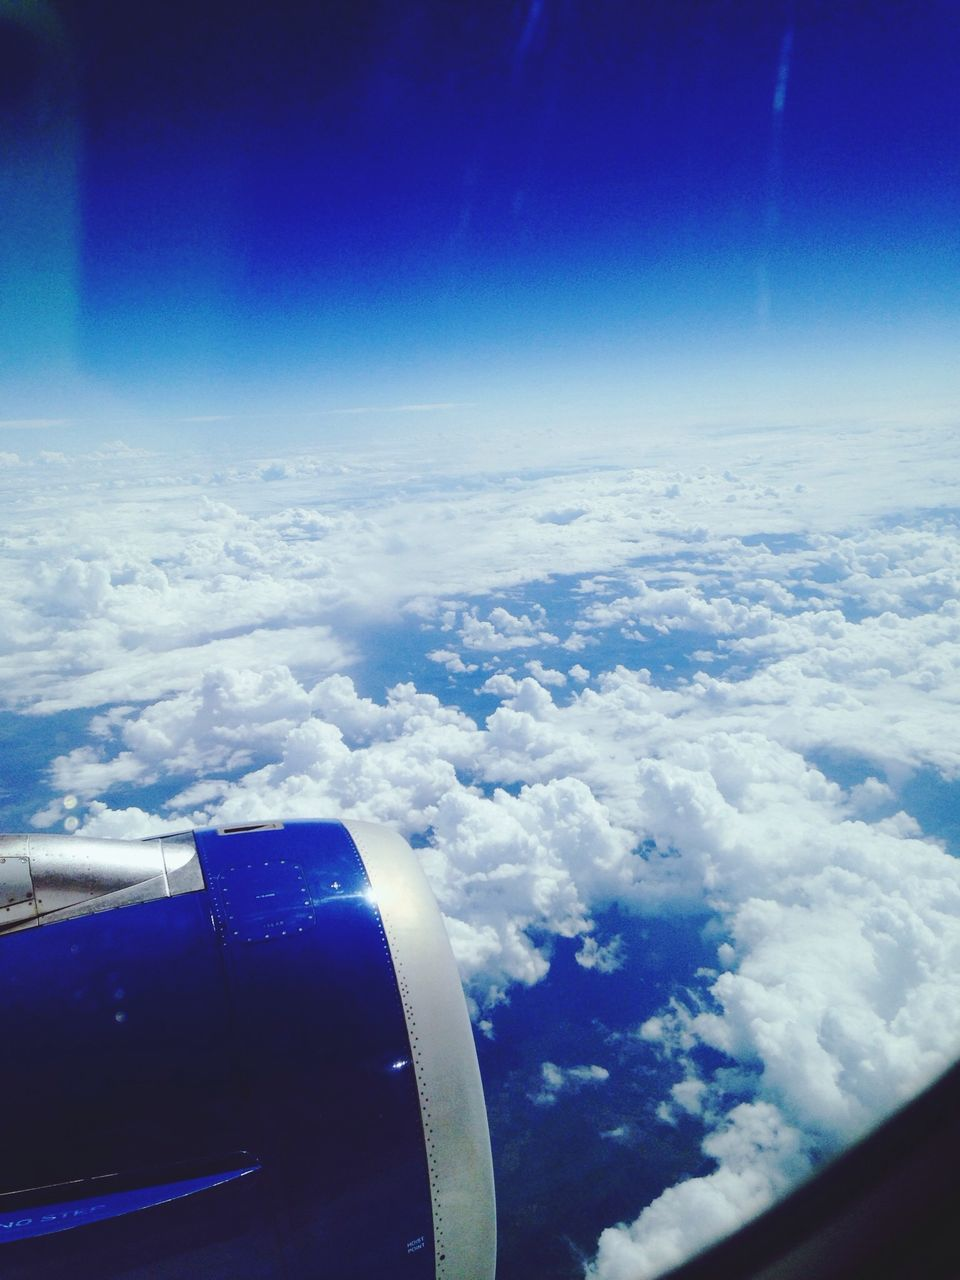 blue, sky, aerial view, airplane, beauty in nature, nature, cloud - sky, journey, cloudscape, scenics, transportation, no people, outdoors, tranquility, majestic, mode of transport, day, tranquil scene, airplane wing, travel, air vehicle, aircraft wing, flying, vehicle part, the natural world